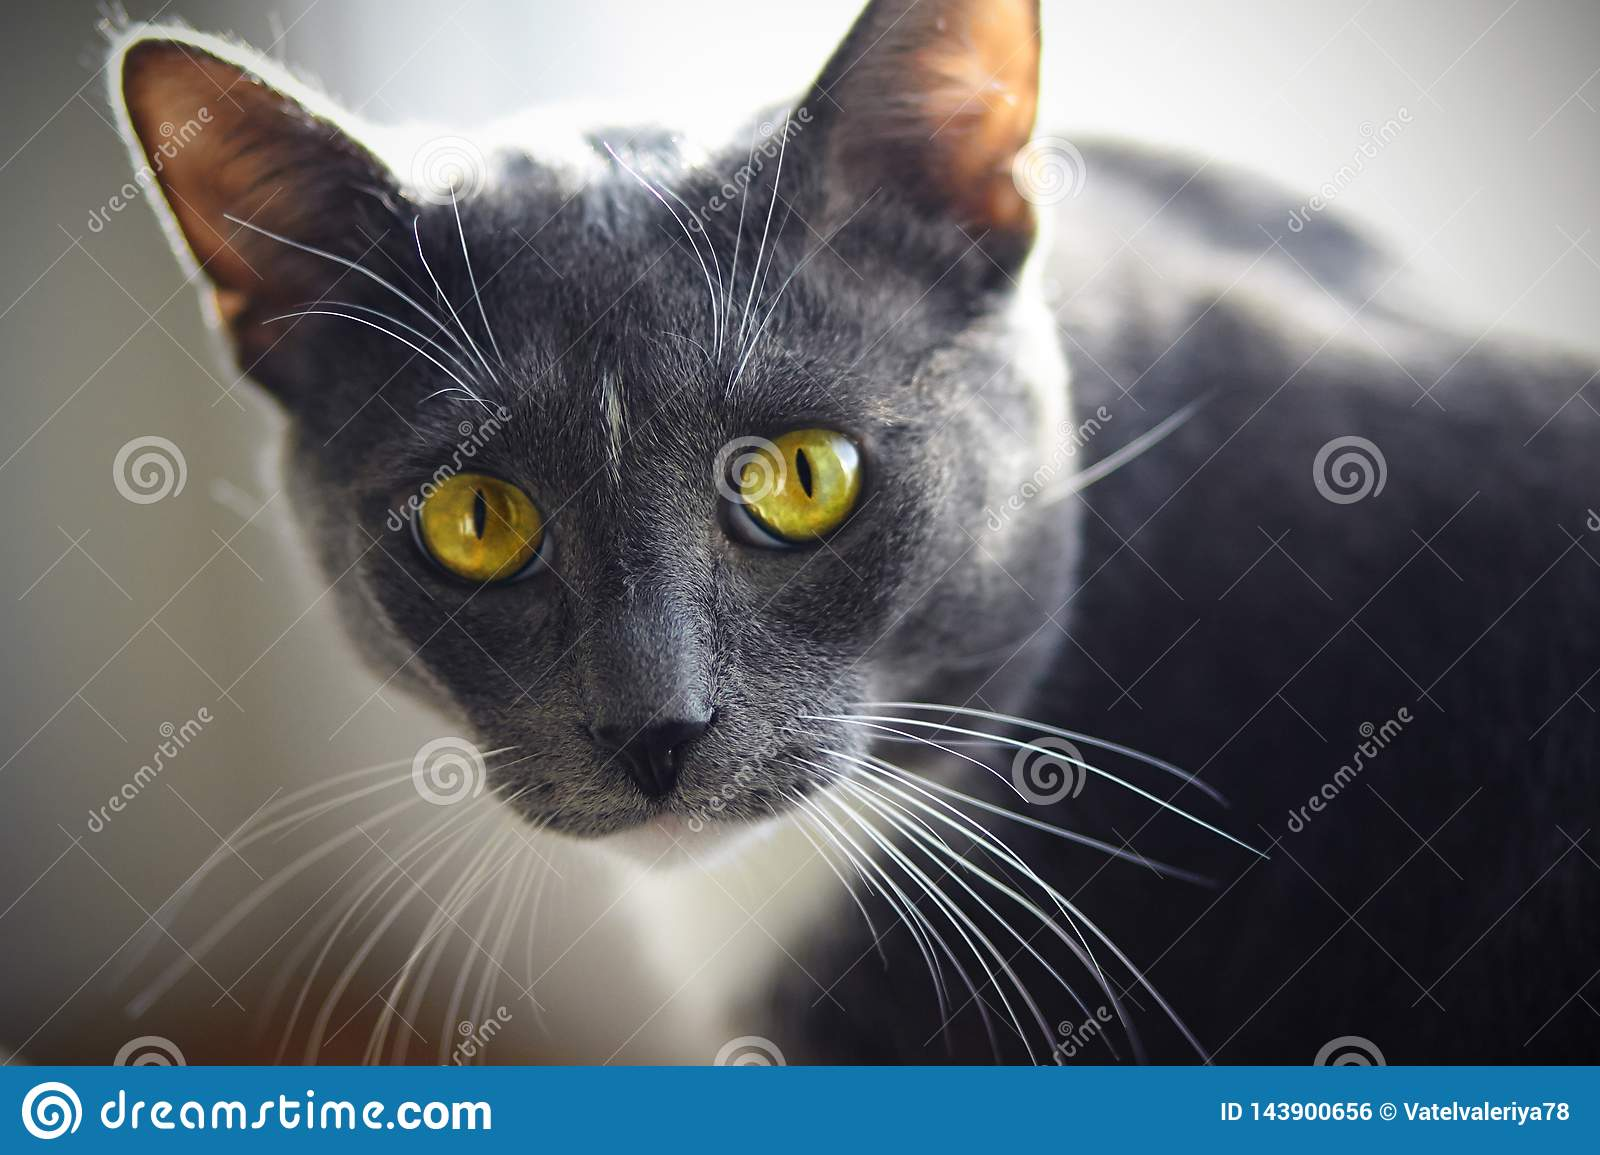 A beautiful home cat of gray color with a white spot on the forehead